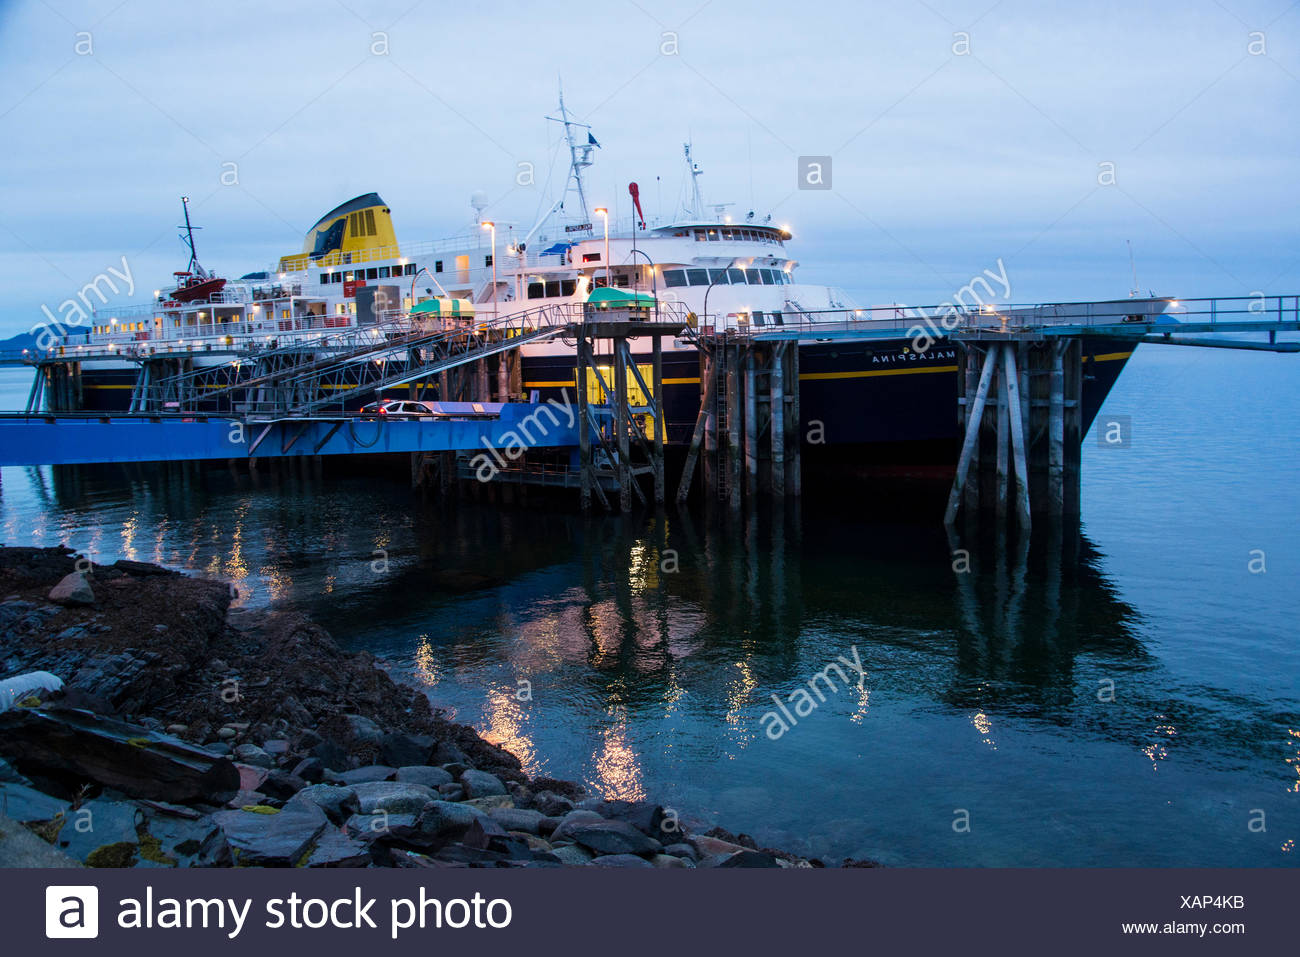 inside passage, USA, Alaska, state ferry, ferry, ship, evening - Stock Image